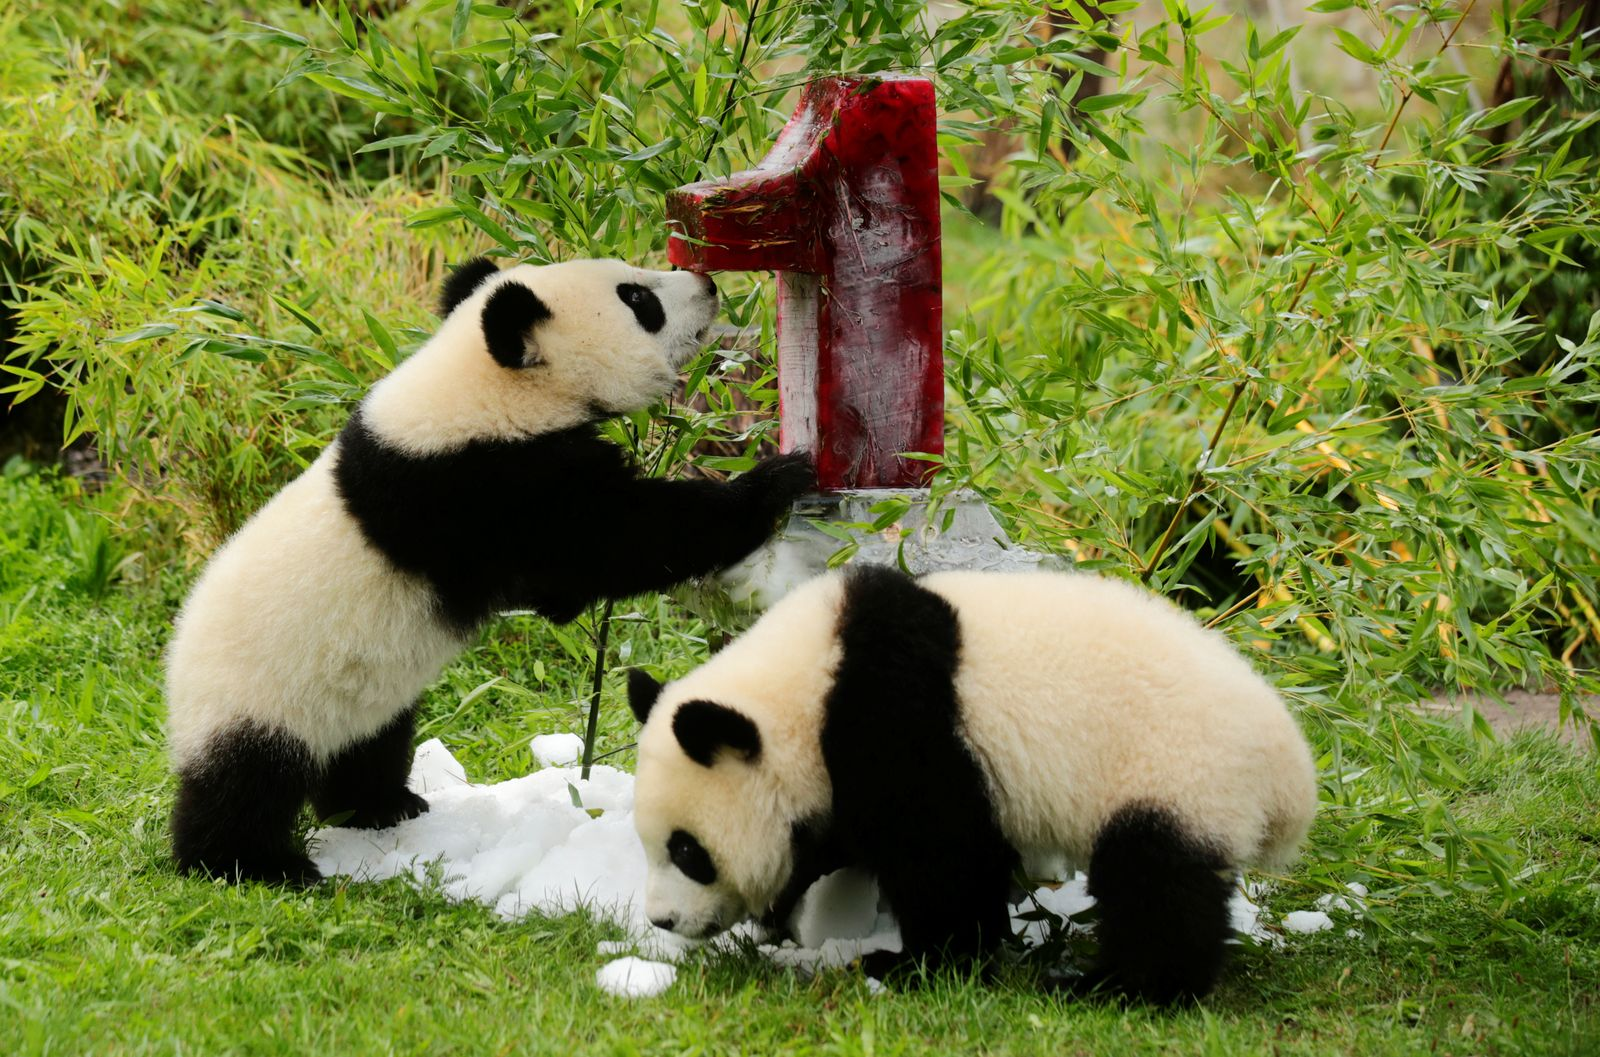 The panda twins Pit and Paule receive a birthday ice cake in their enclosure at the Berlin Zoo